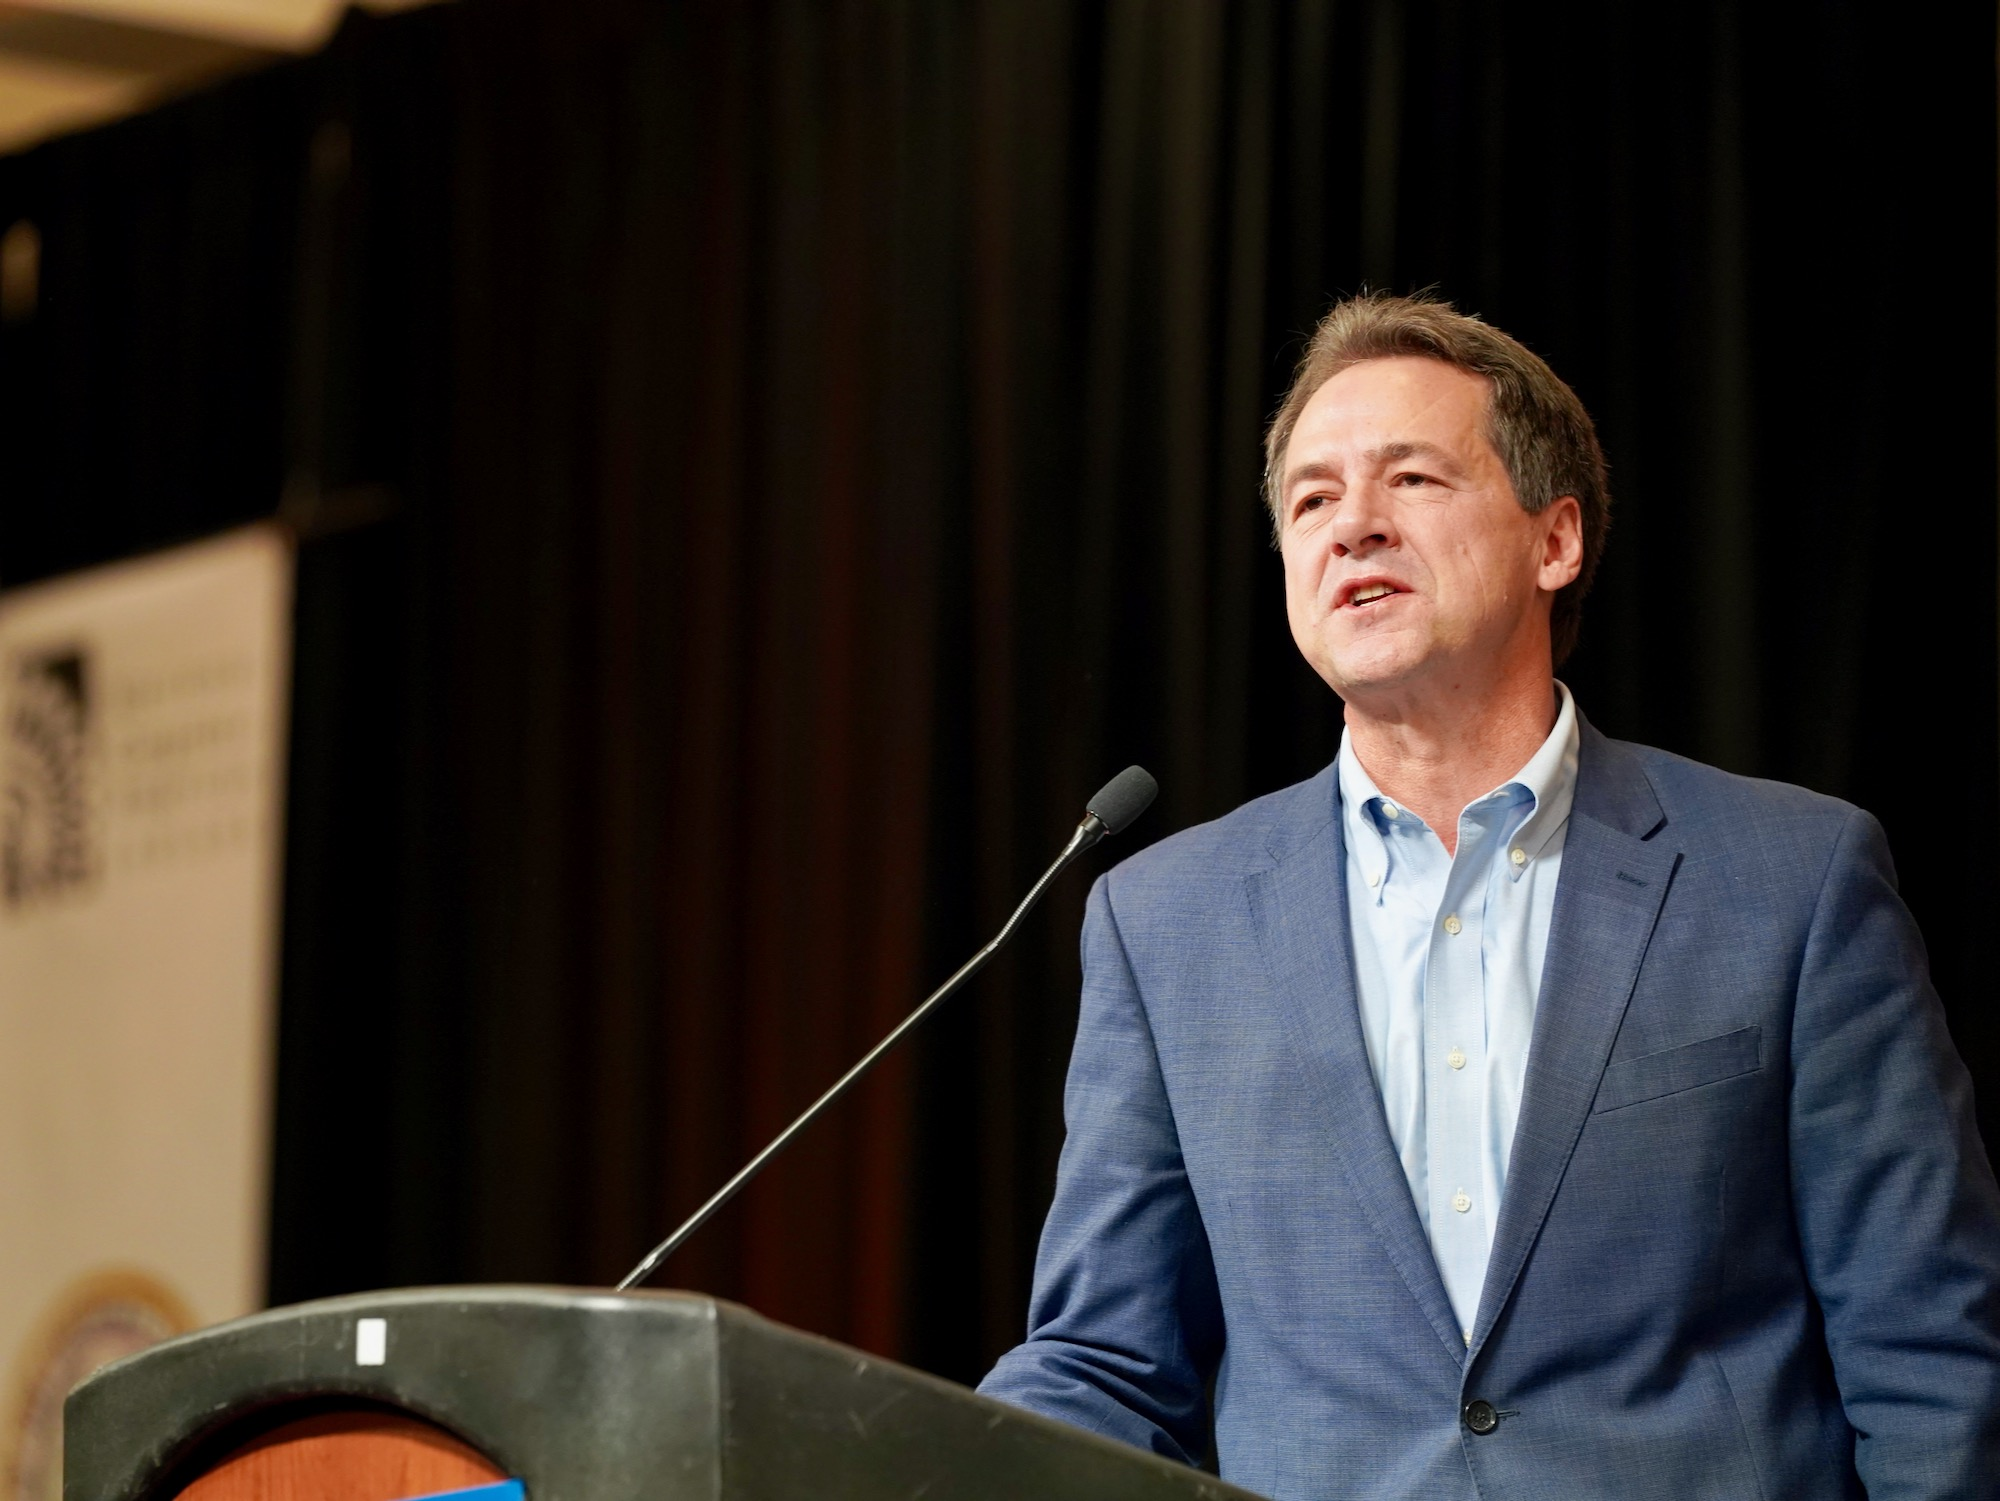 Steve Bullock's issue was tribal sovereignty … now he's gone